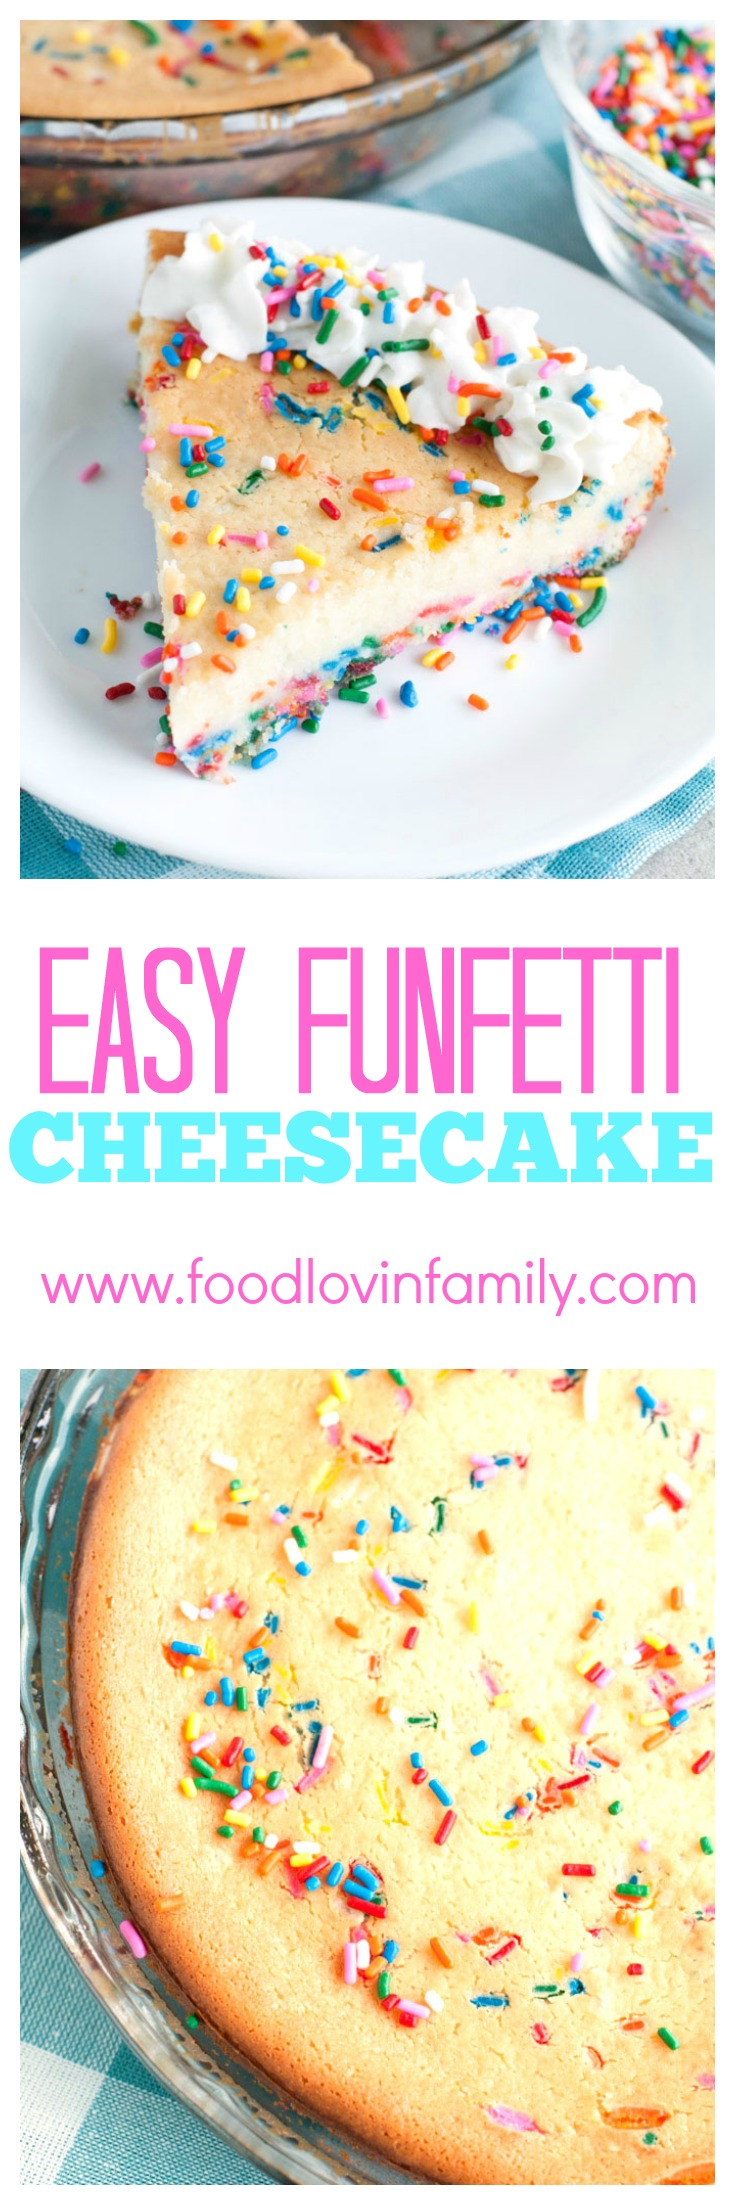 Easy Funfetti Cheesecake is made using the classic Bisquick recipe with the addition of colorful sprinkles.